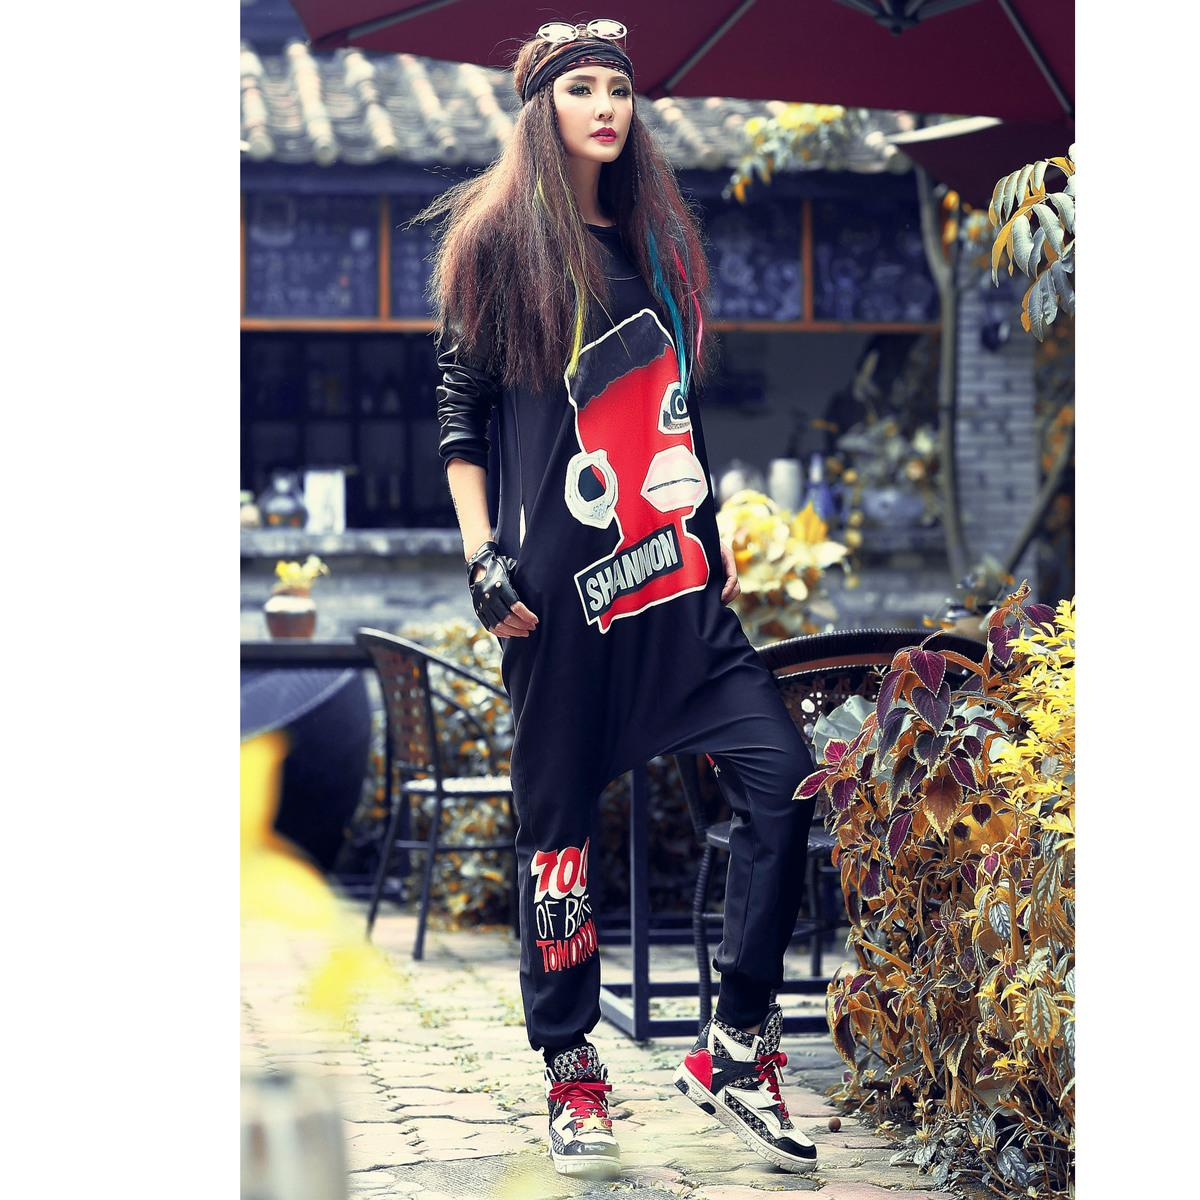 2019 Just.Be.Never Hip Hop Style Slacks Harem Pants Lady Casual Large Size  High Elastic Waist Loose New Novelty Products 2018 Dance D18122701 From  Tai002 0b3add26d4e4